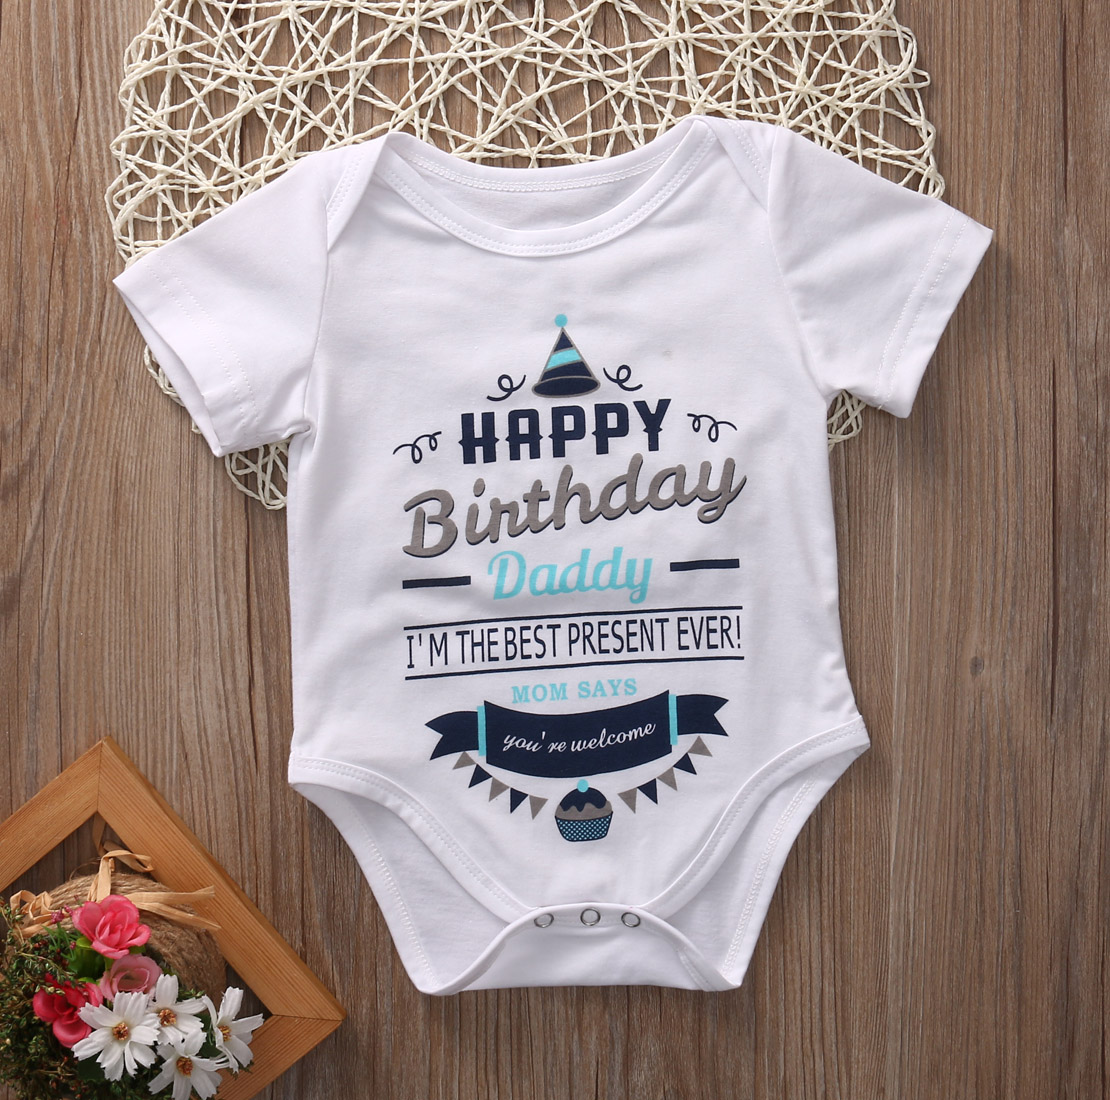 Birthday Infant  Baby Boy Girl Cotton Bodysuit Short Sleeve Outfits Birthday Clothes